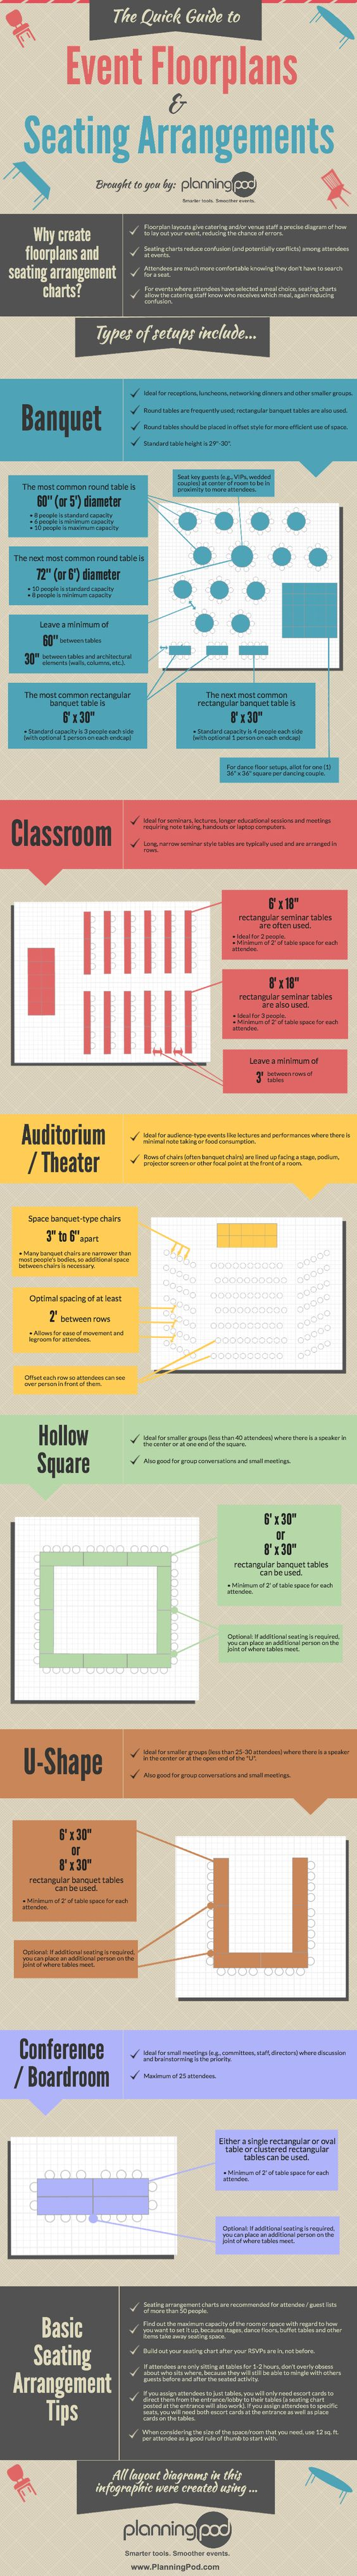 Get an at-a-glance look at the basics of creating an event floor plan / seating arrangement / table layout with this helpful infographic.: